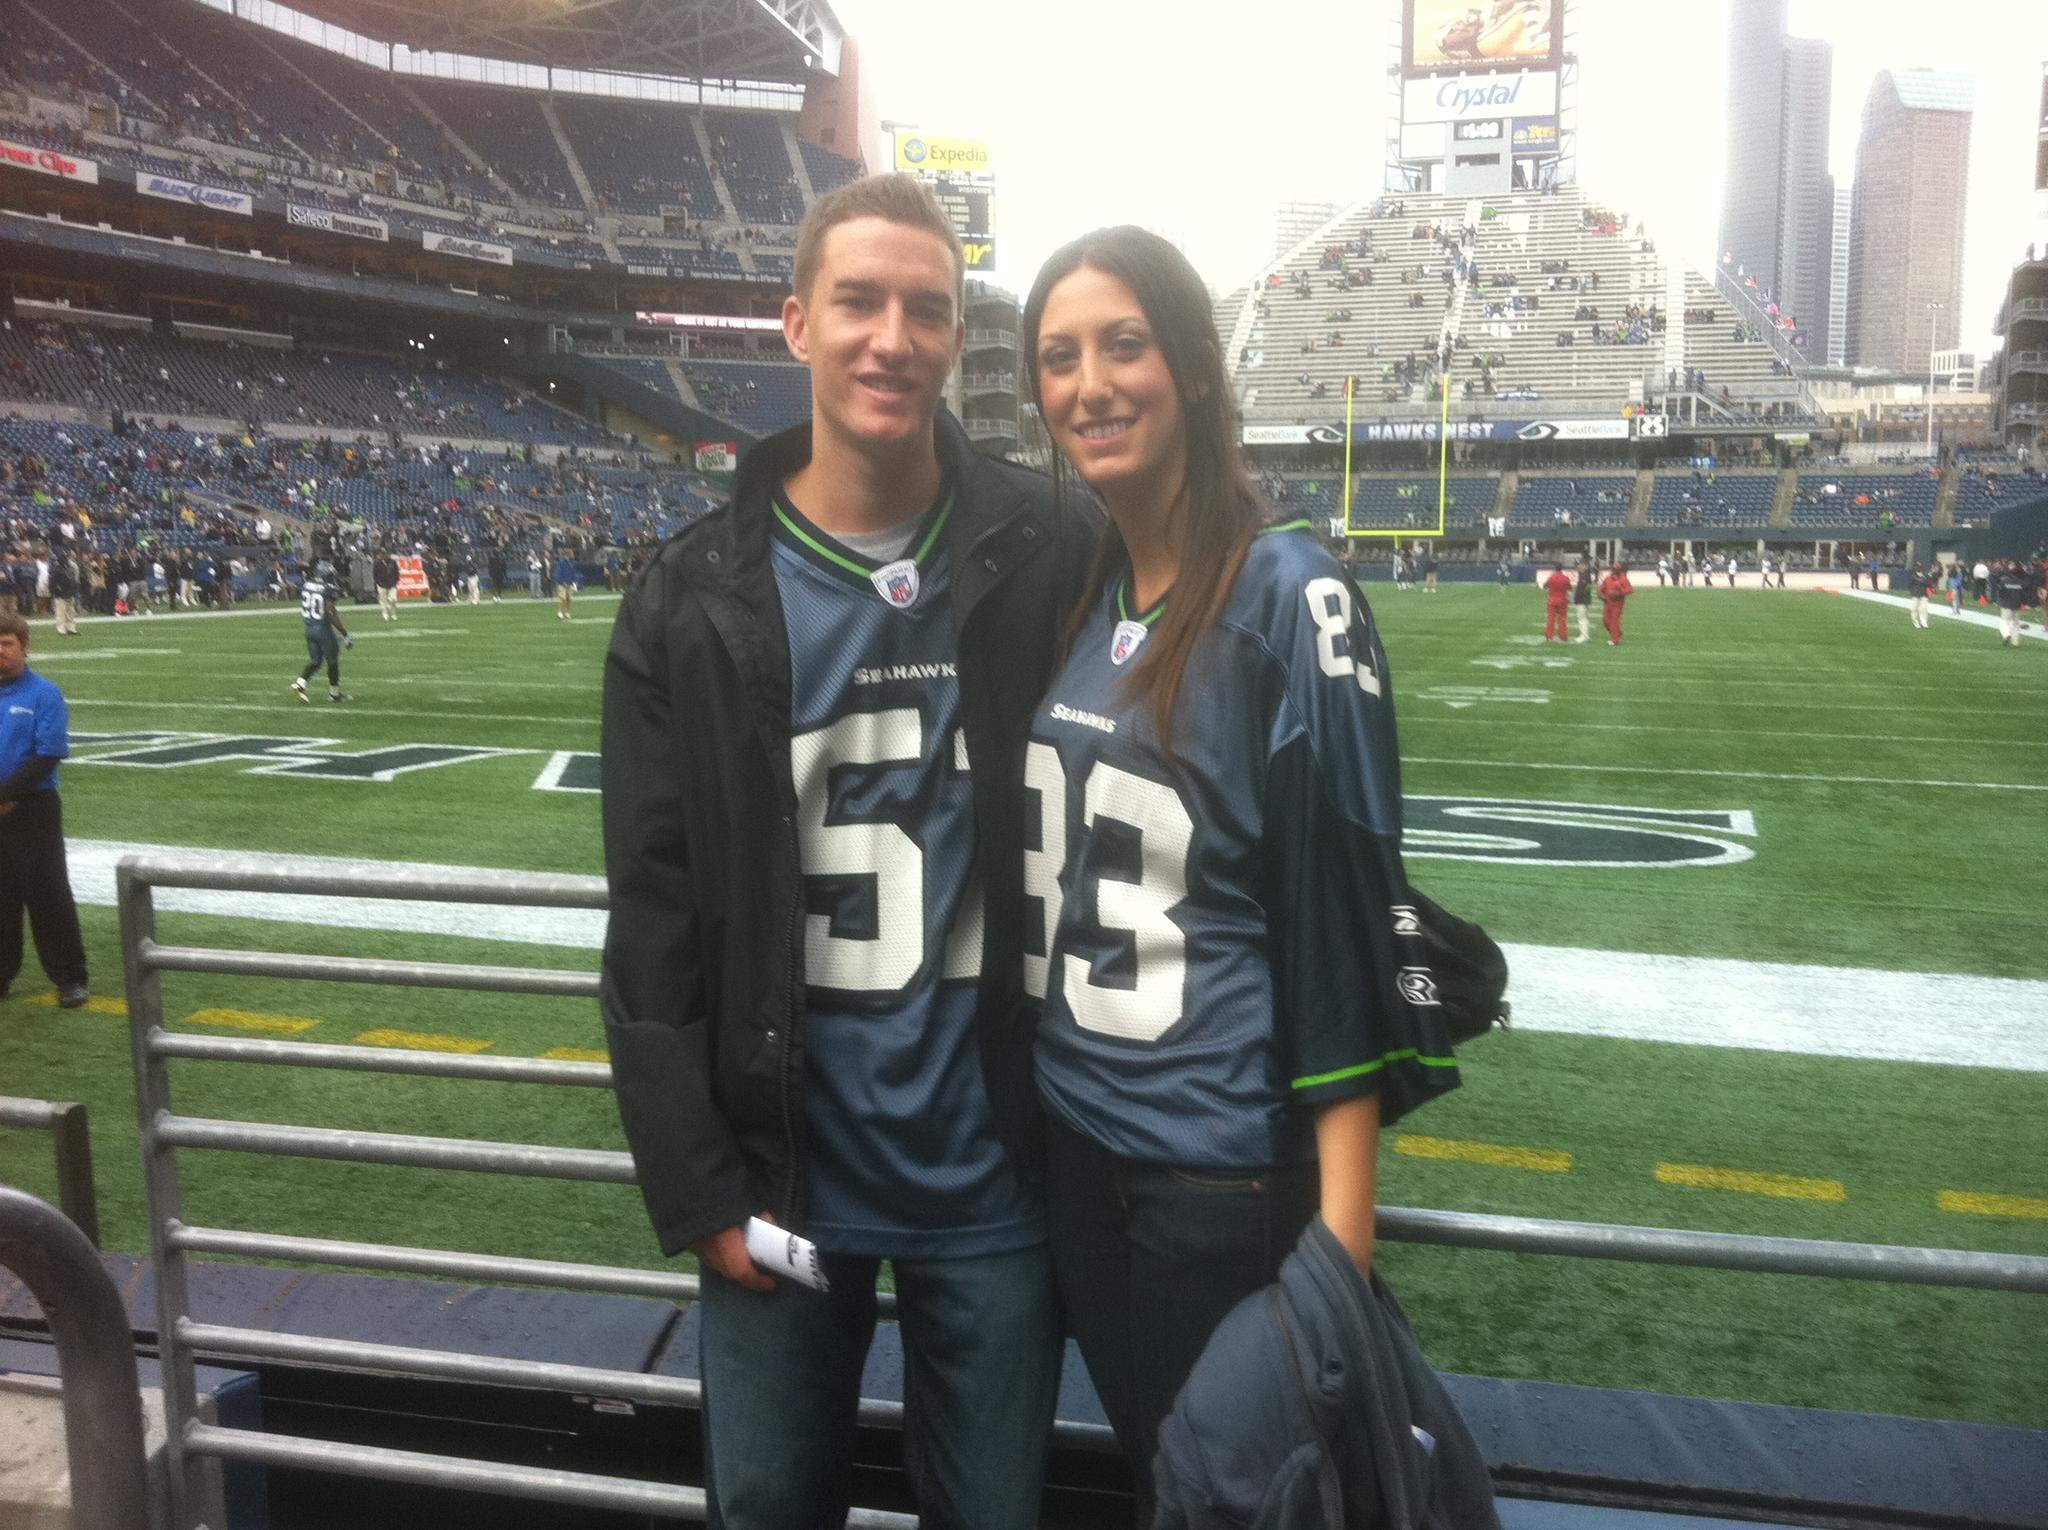 Our first Seahawks game together. Go Hawks!